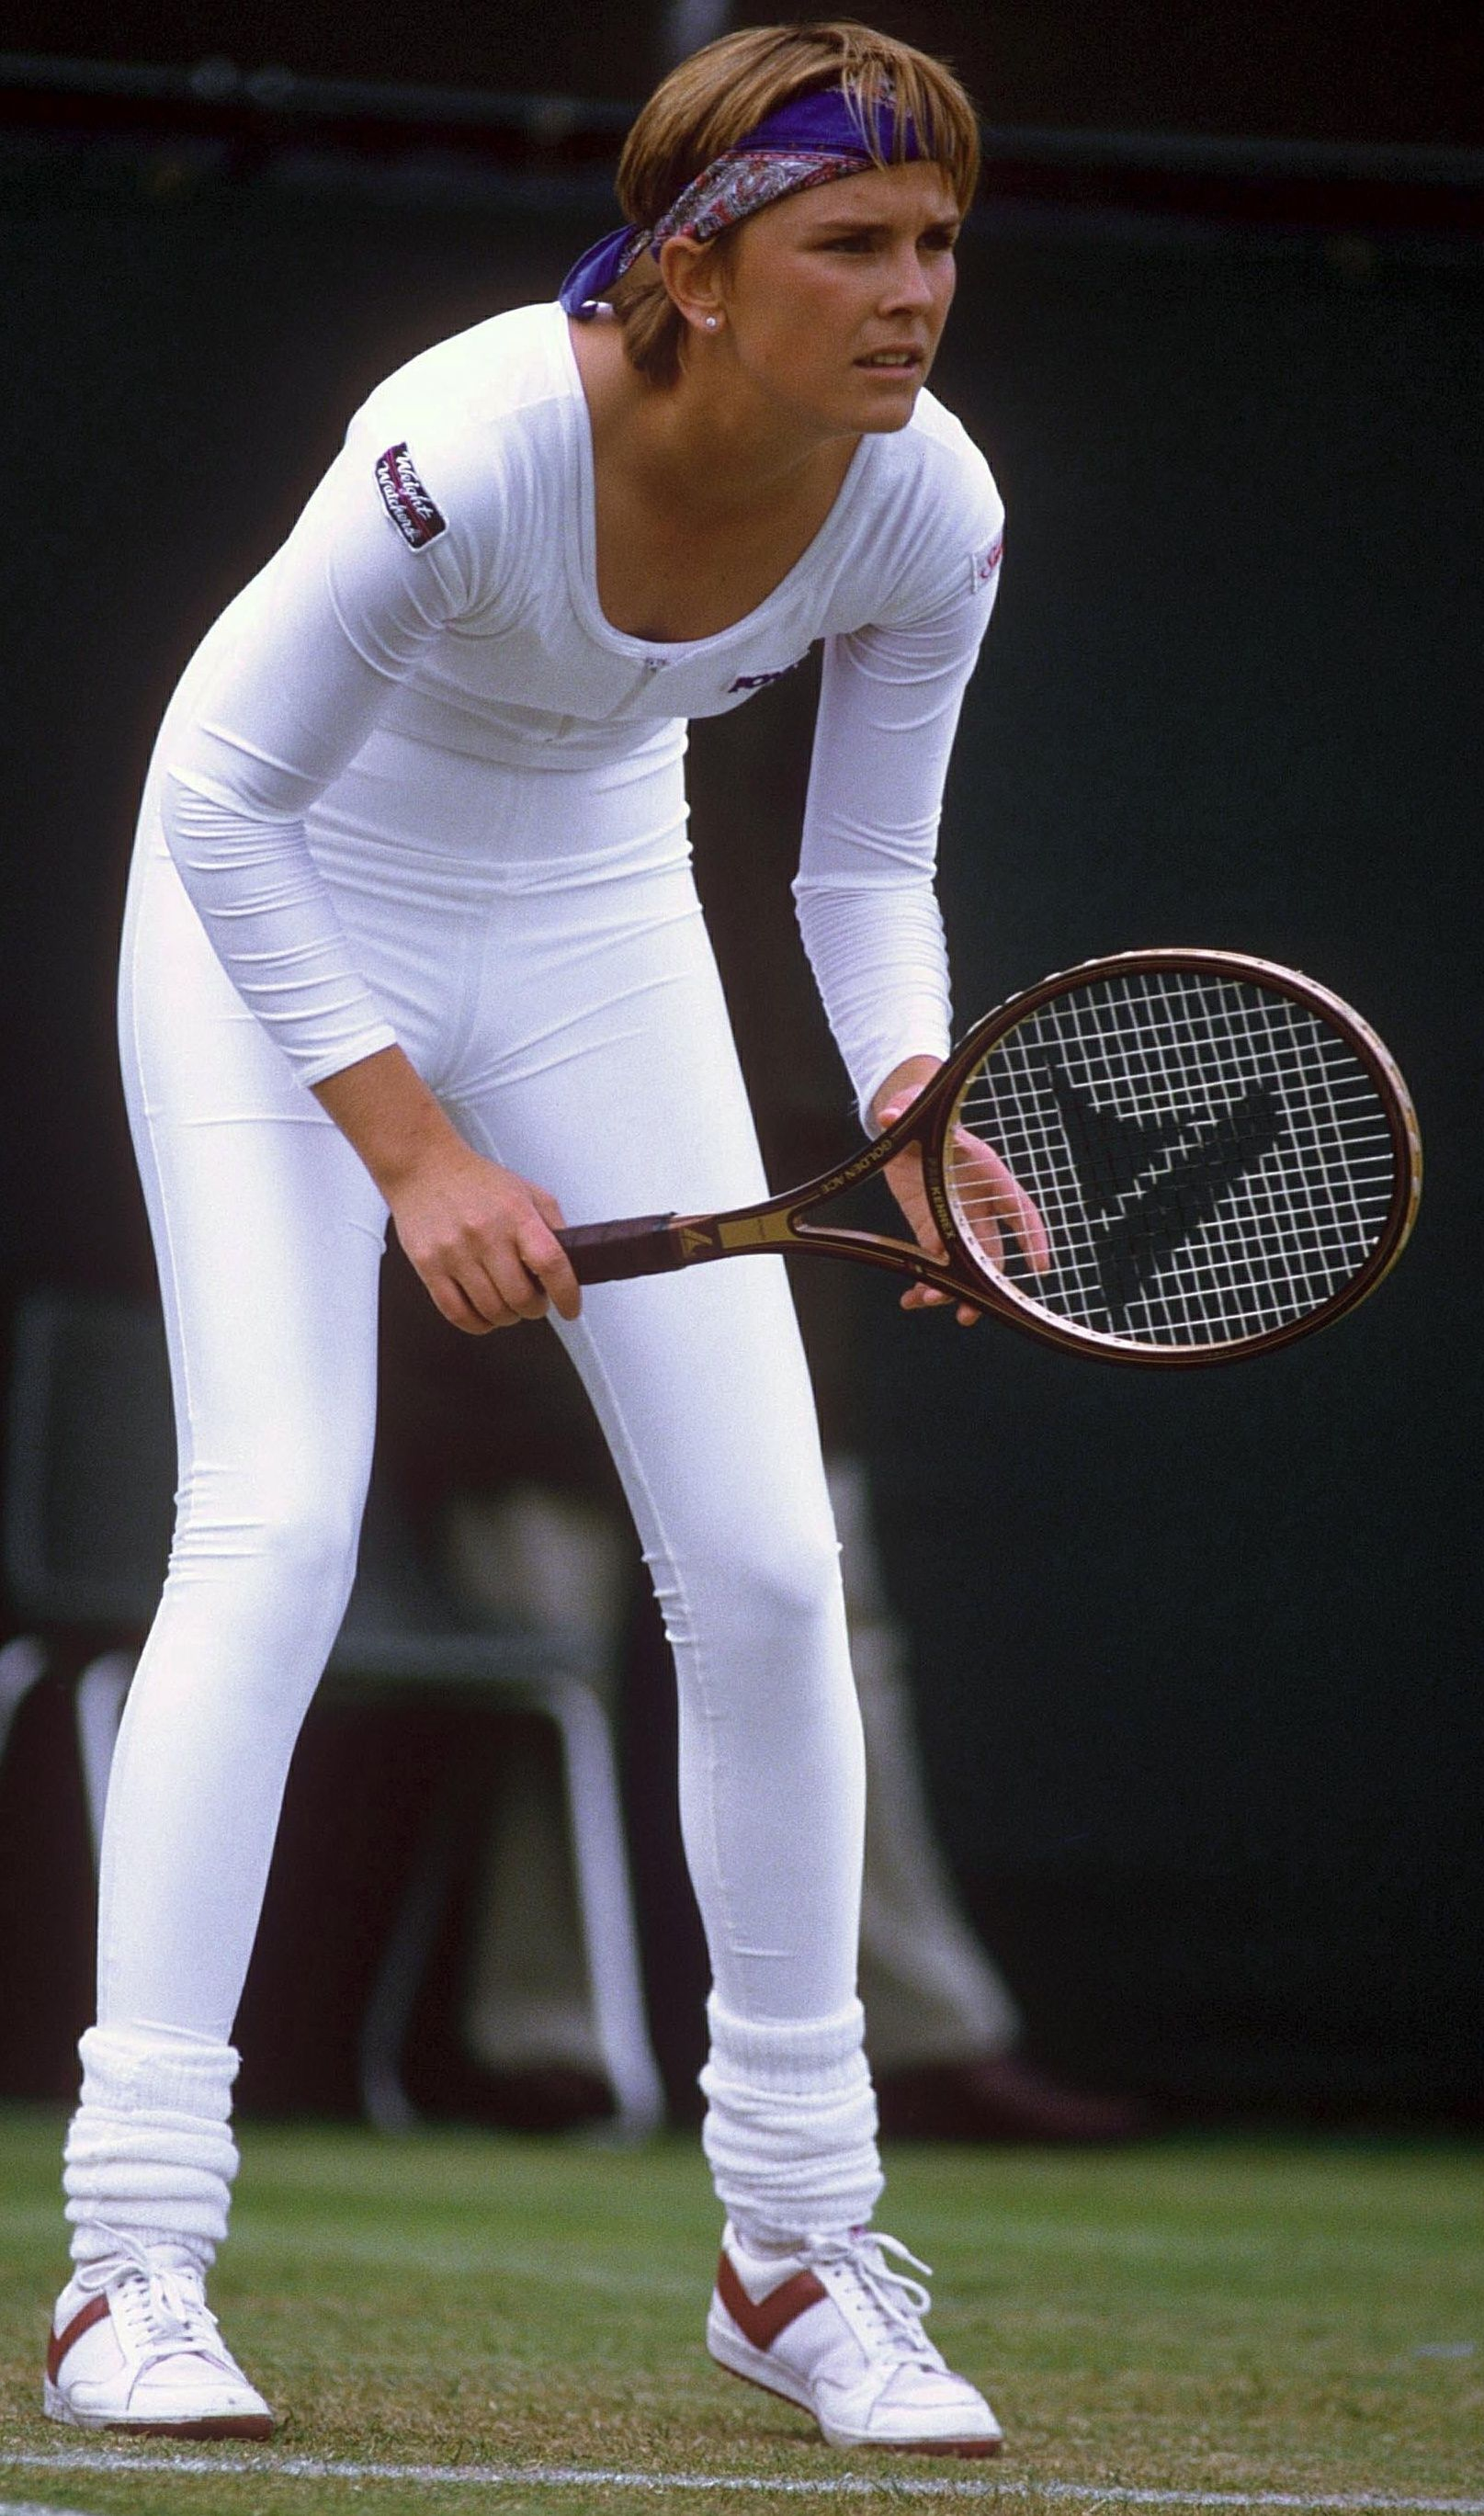 Wimbledon judges were not feeing Anne White's white catsuit in 1985.